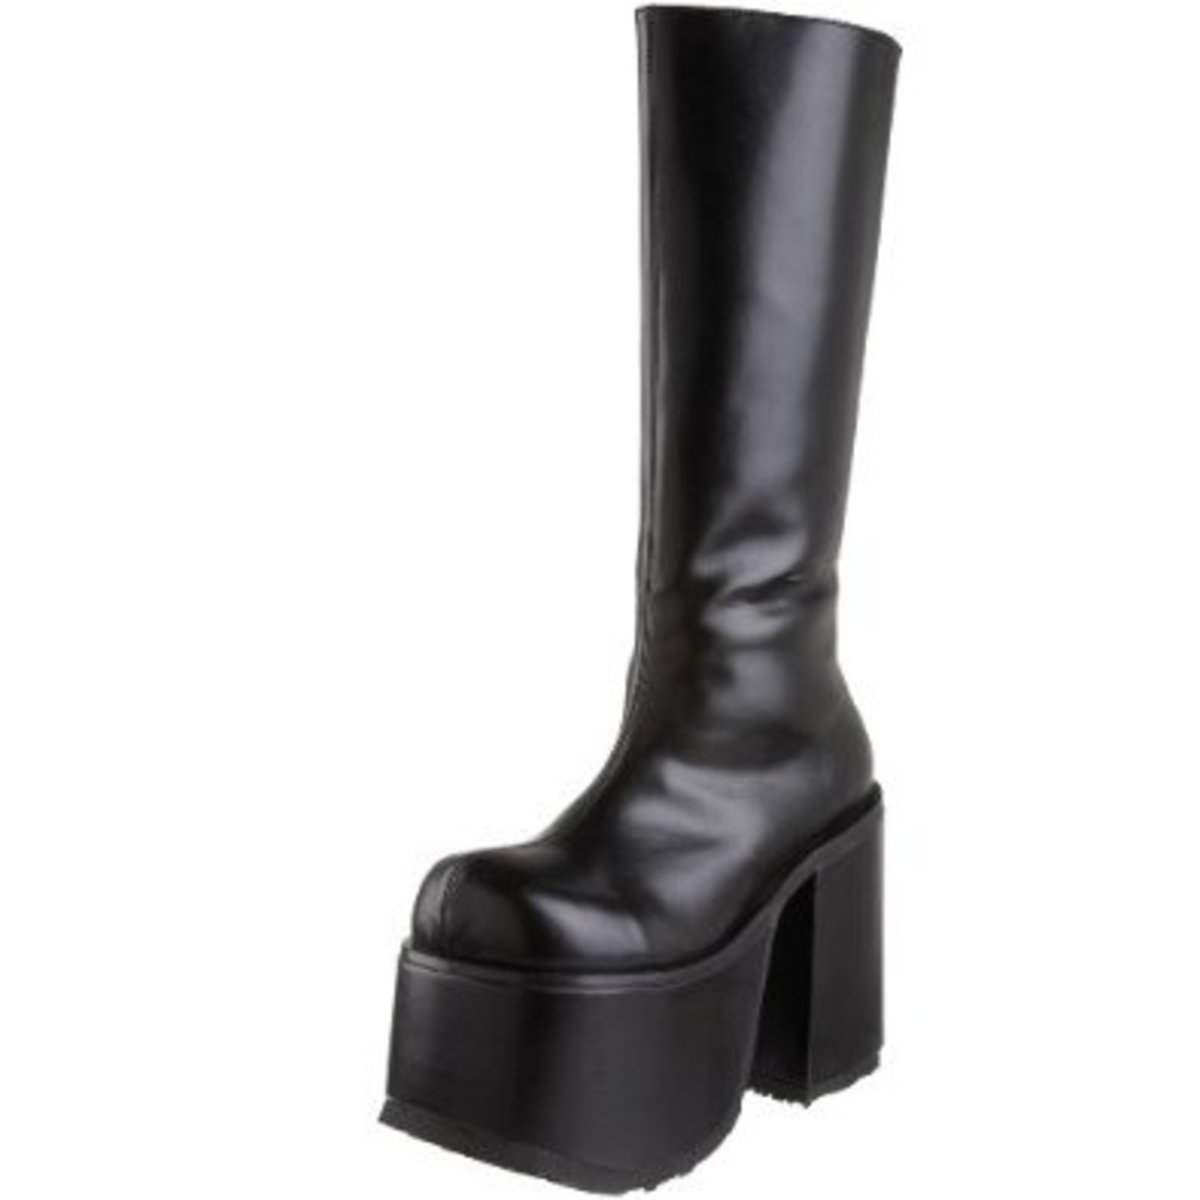 Pleaser Men's Chopper-100 Platform Boot